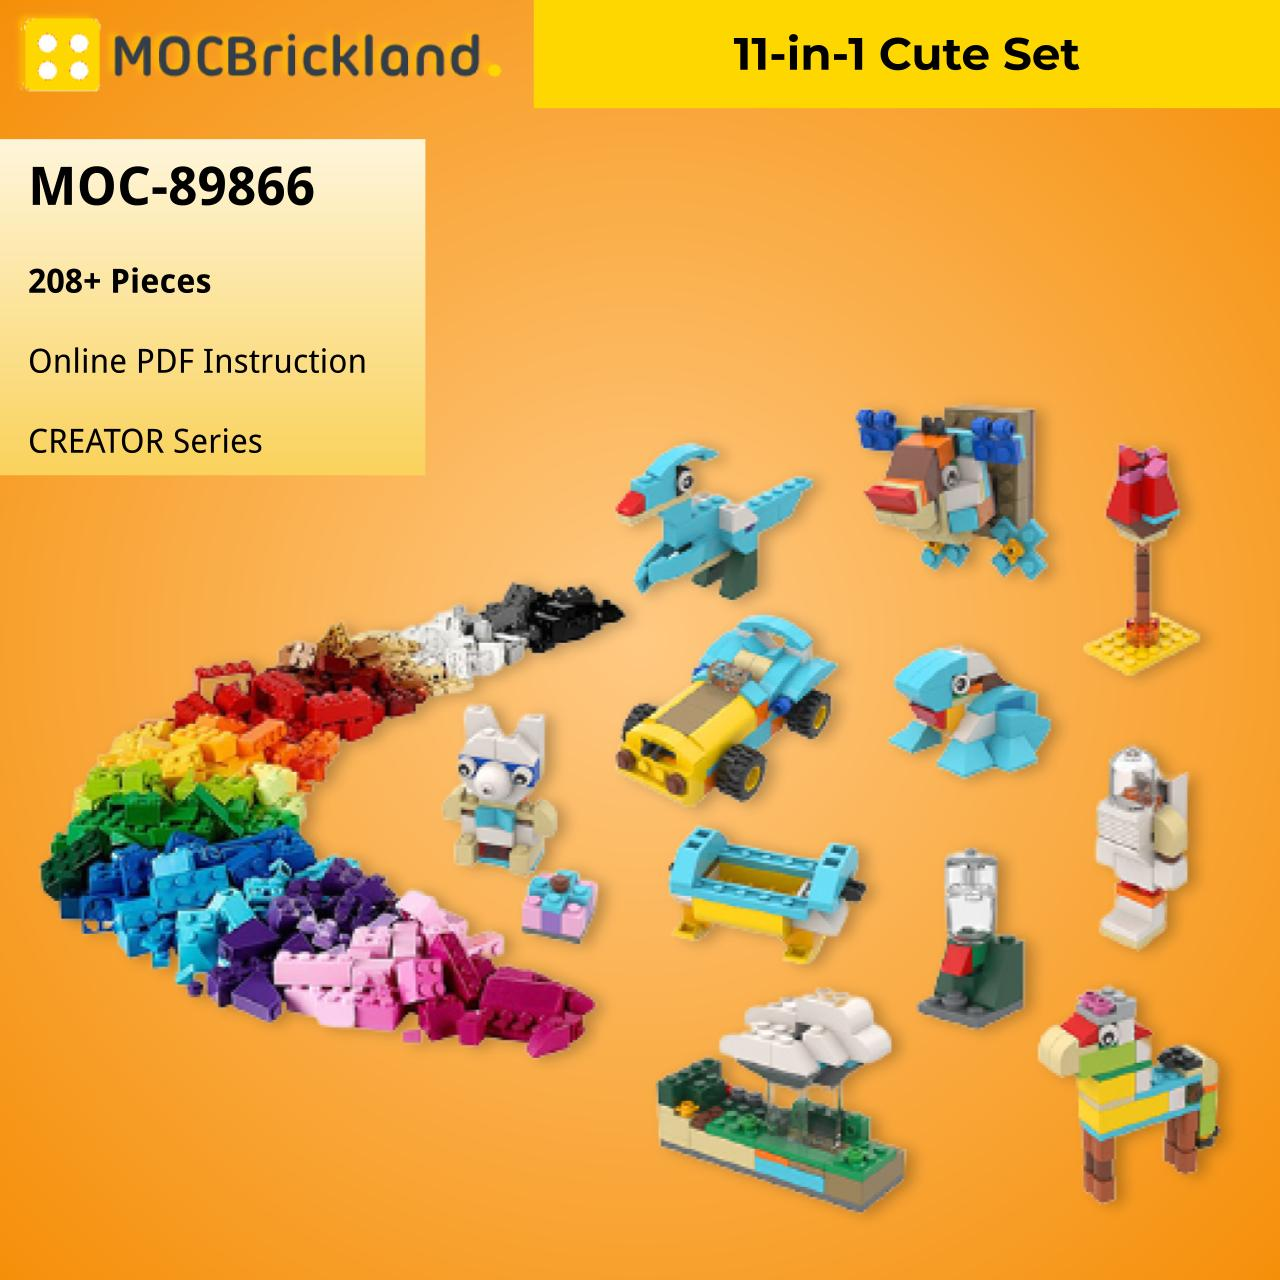 11-in-1 Cute Set CREATOR MOC-89866 WITH 208 PIECES